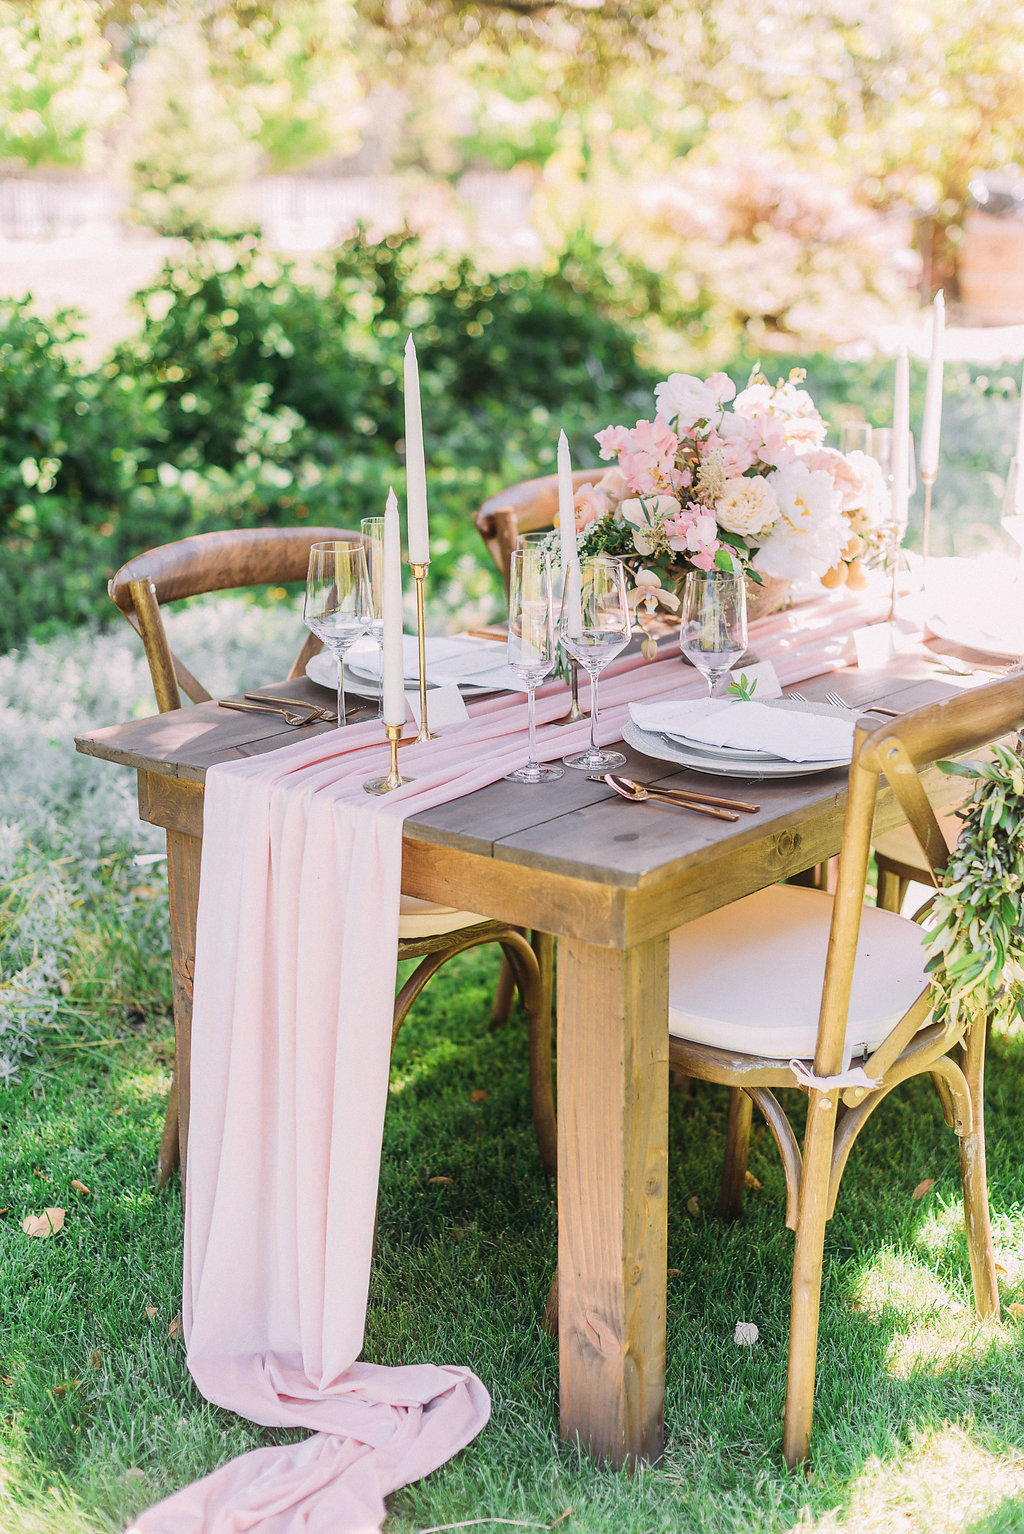 Flowy Pink Silk Chiffon Table runners and Pink Floral arrangements on wooden table for outdoor wedding venue